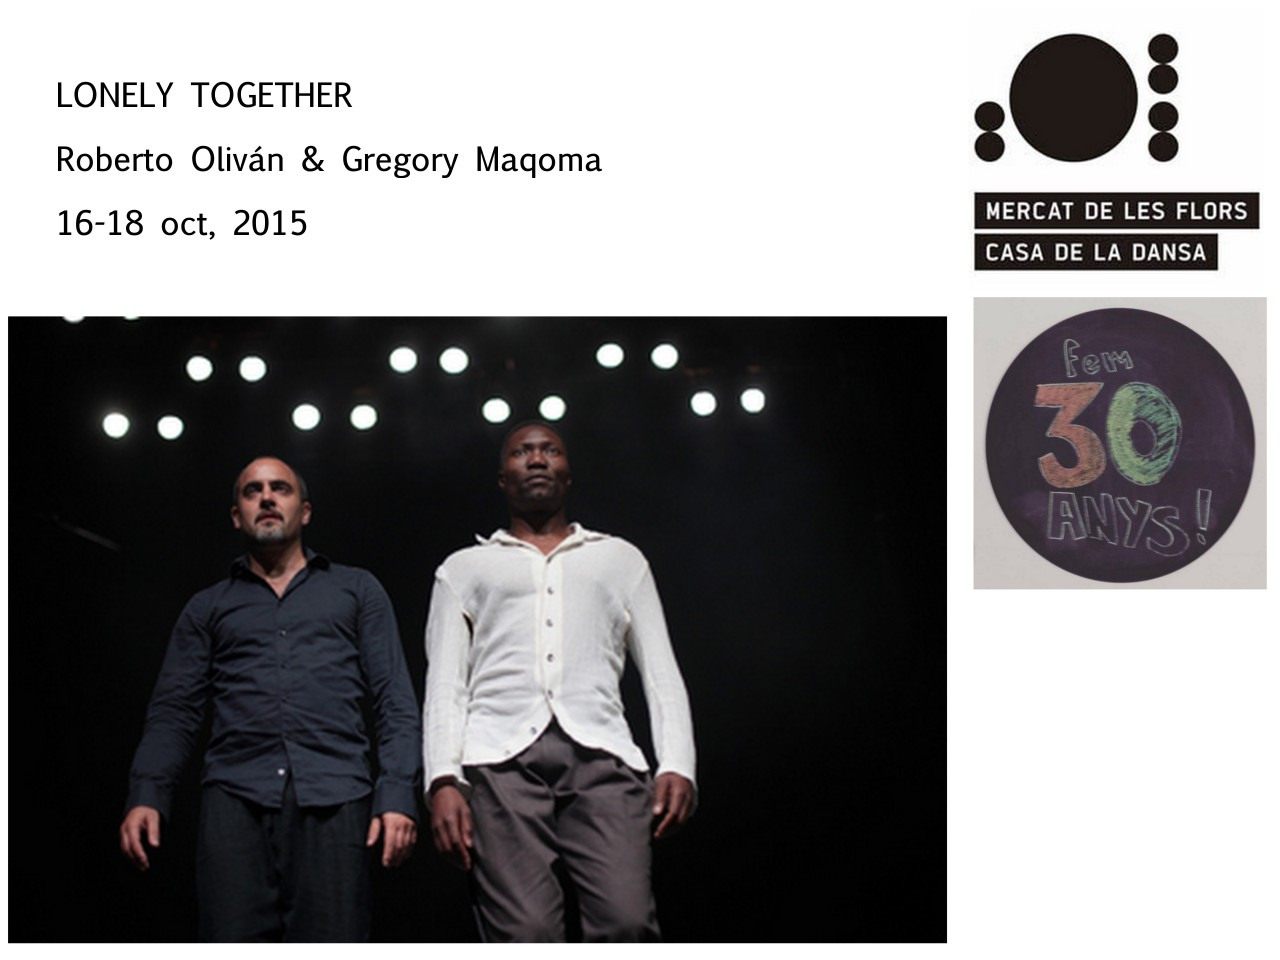 LONELY TOGETHER MERCAT FLORS 2015 30 aniversario Roberto Olivan